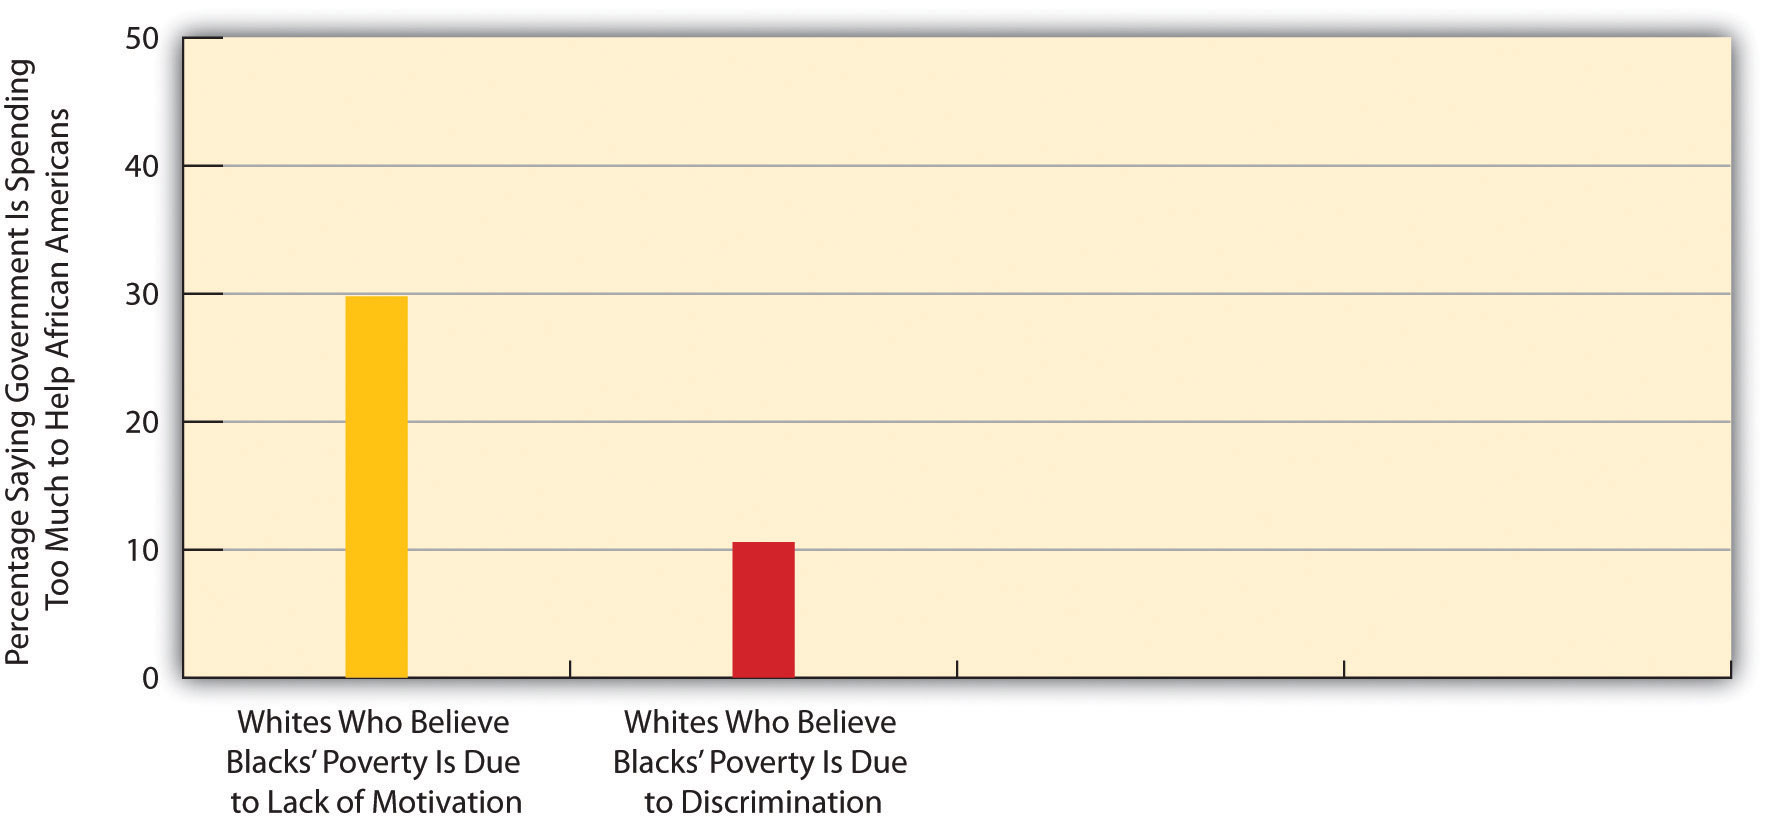 Racial Stereotyping by Non-Latino Whites and Their Opposition to Government Spending to Help African Americans